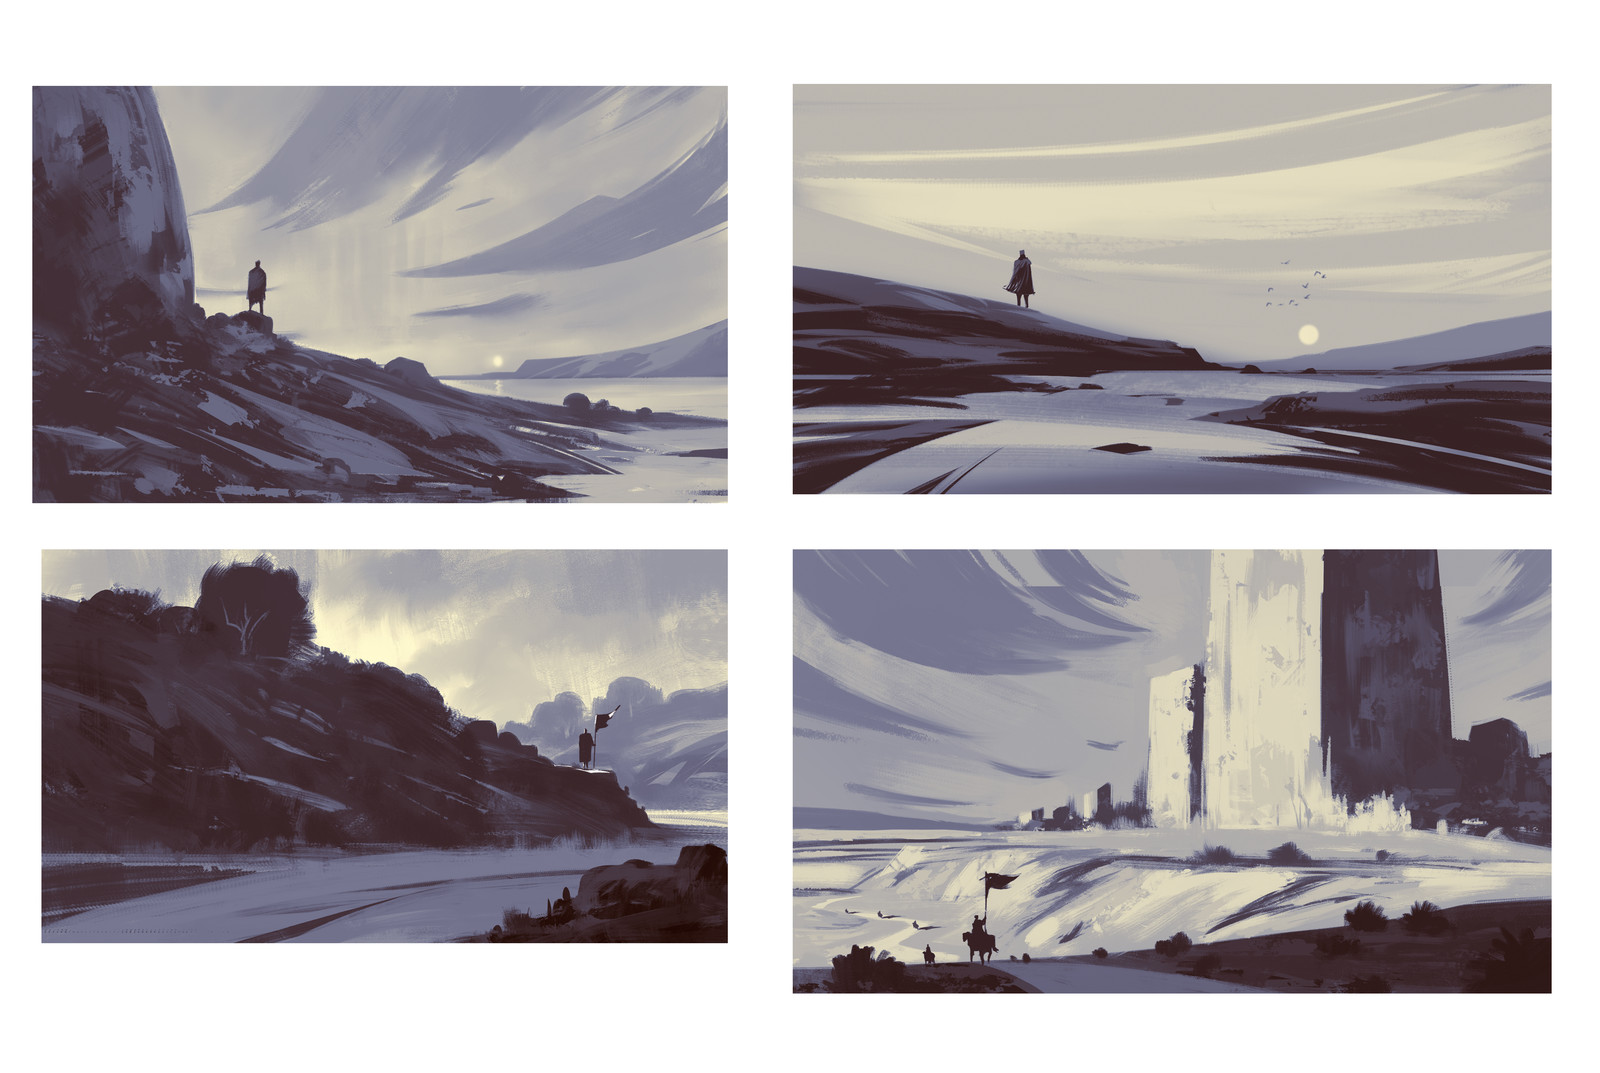 Environment_Comp Sketches